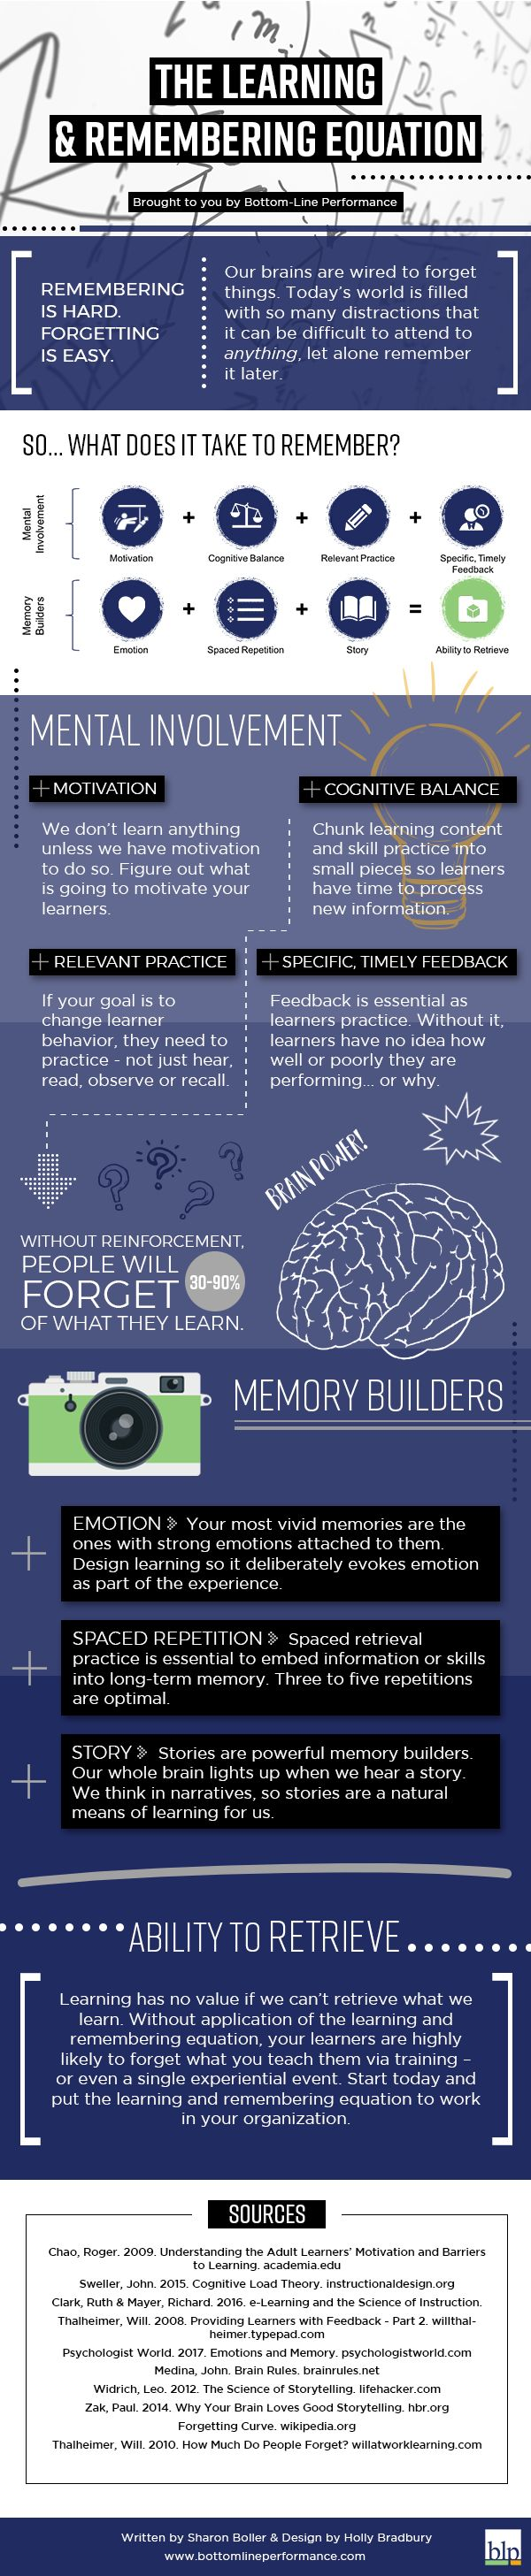 The Learning & Remembering Equation Infographic - https://elearninginfographics.com/learning-remembering-equation-infographic/